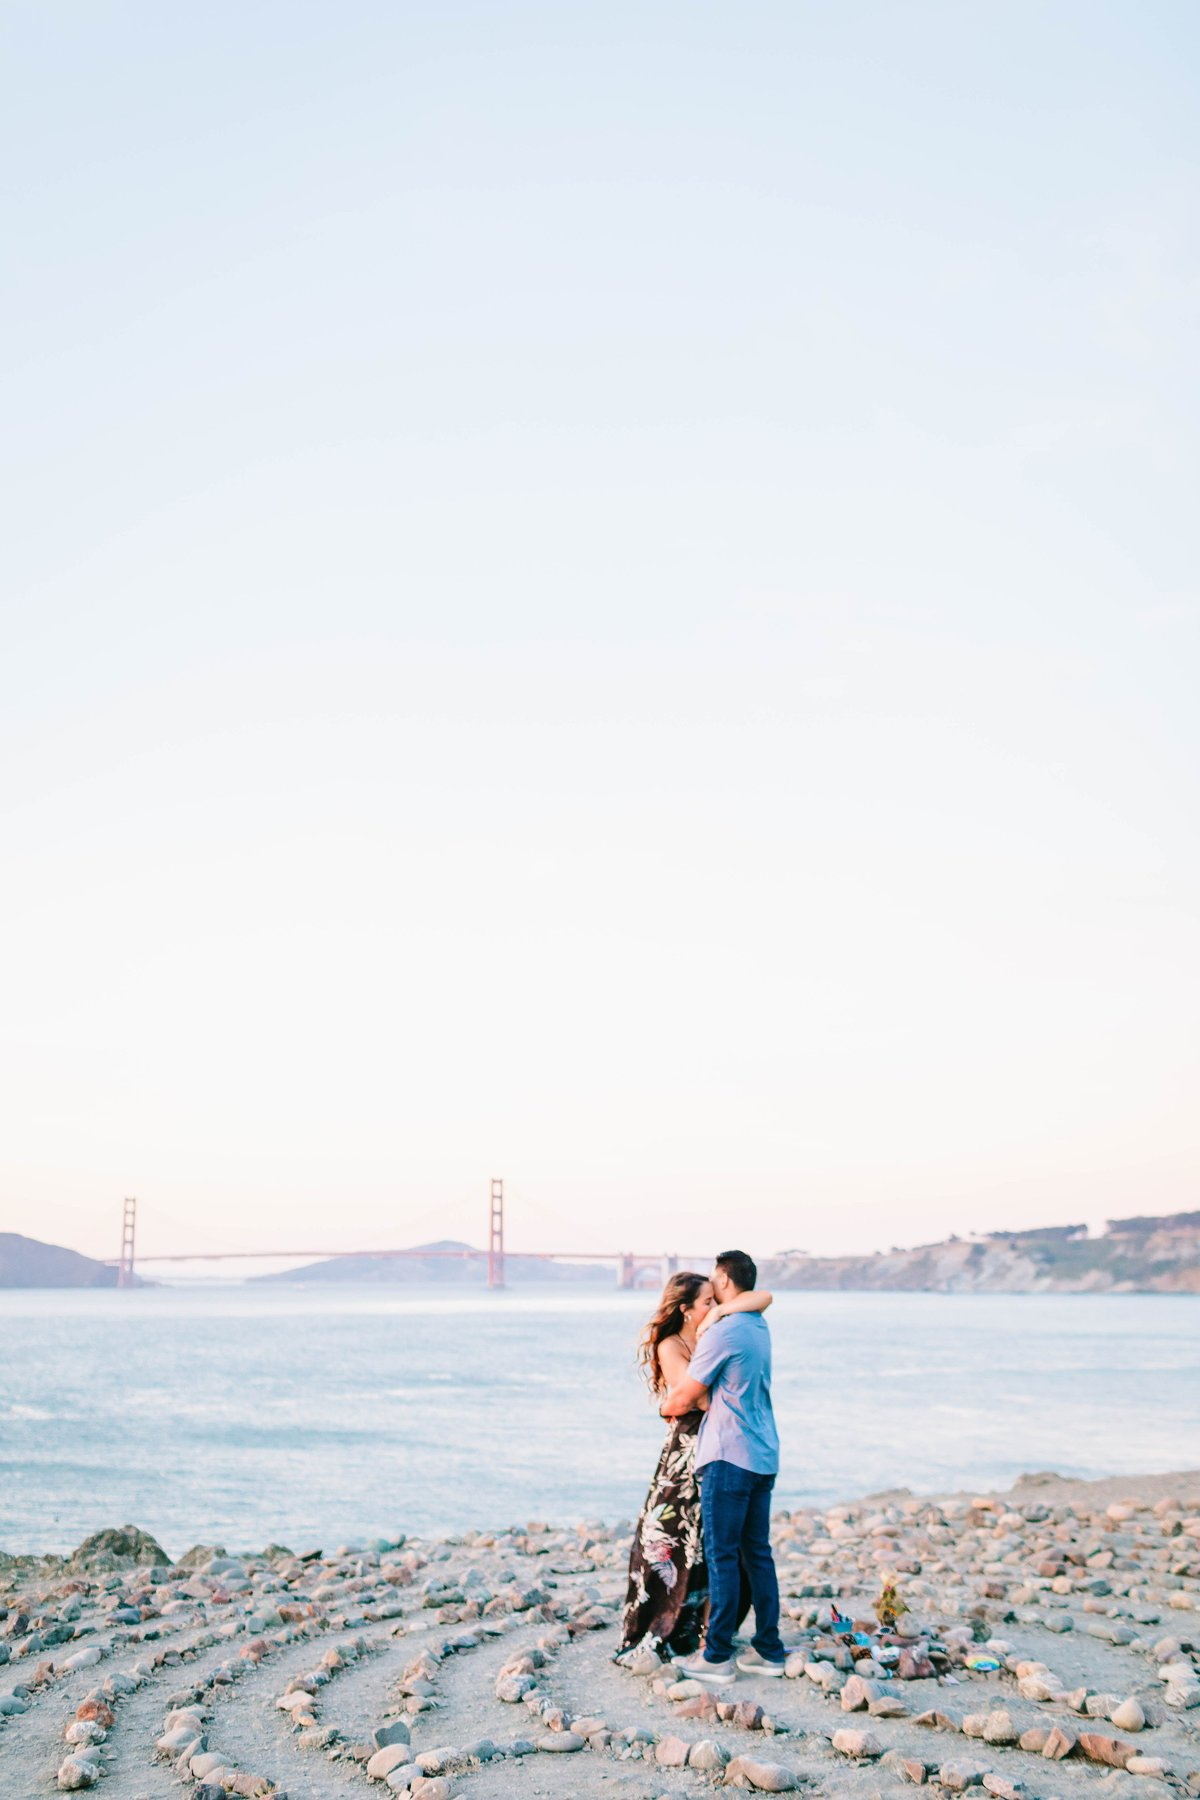 Best California Engagement Photographer_Jodee Debes Photography_074